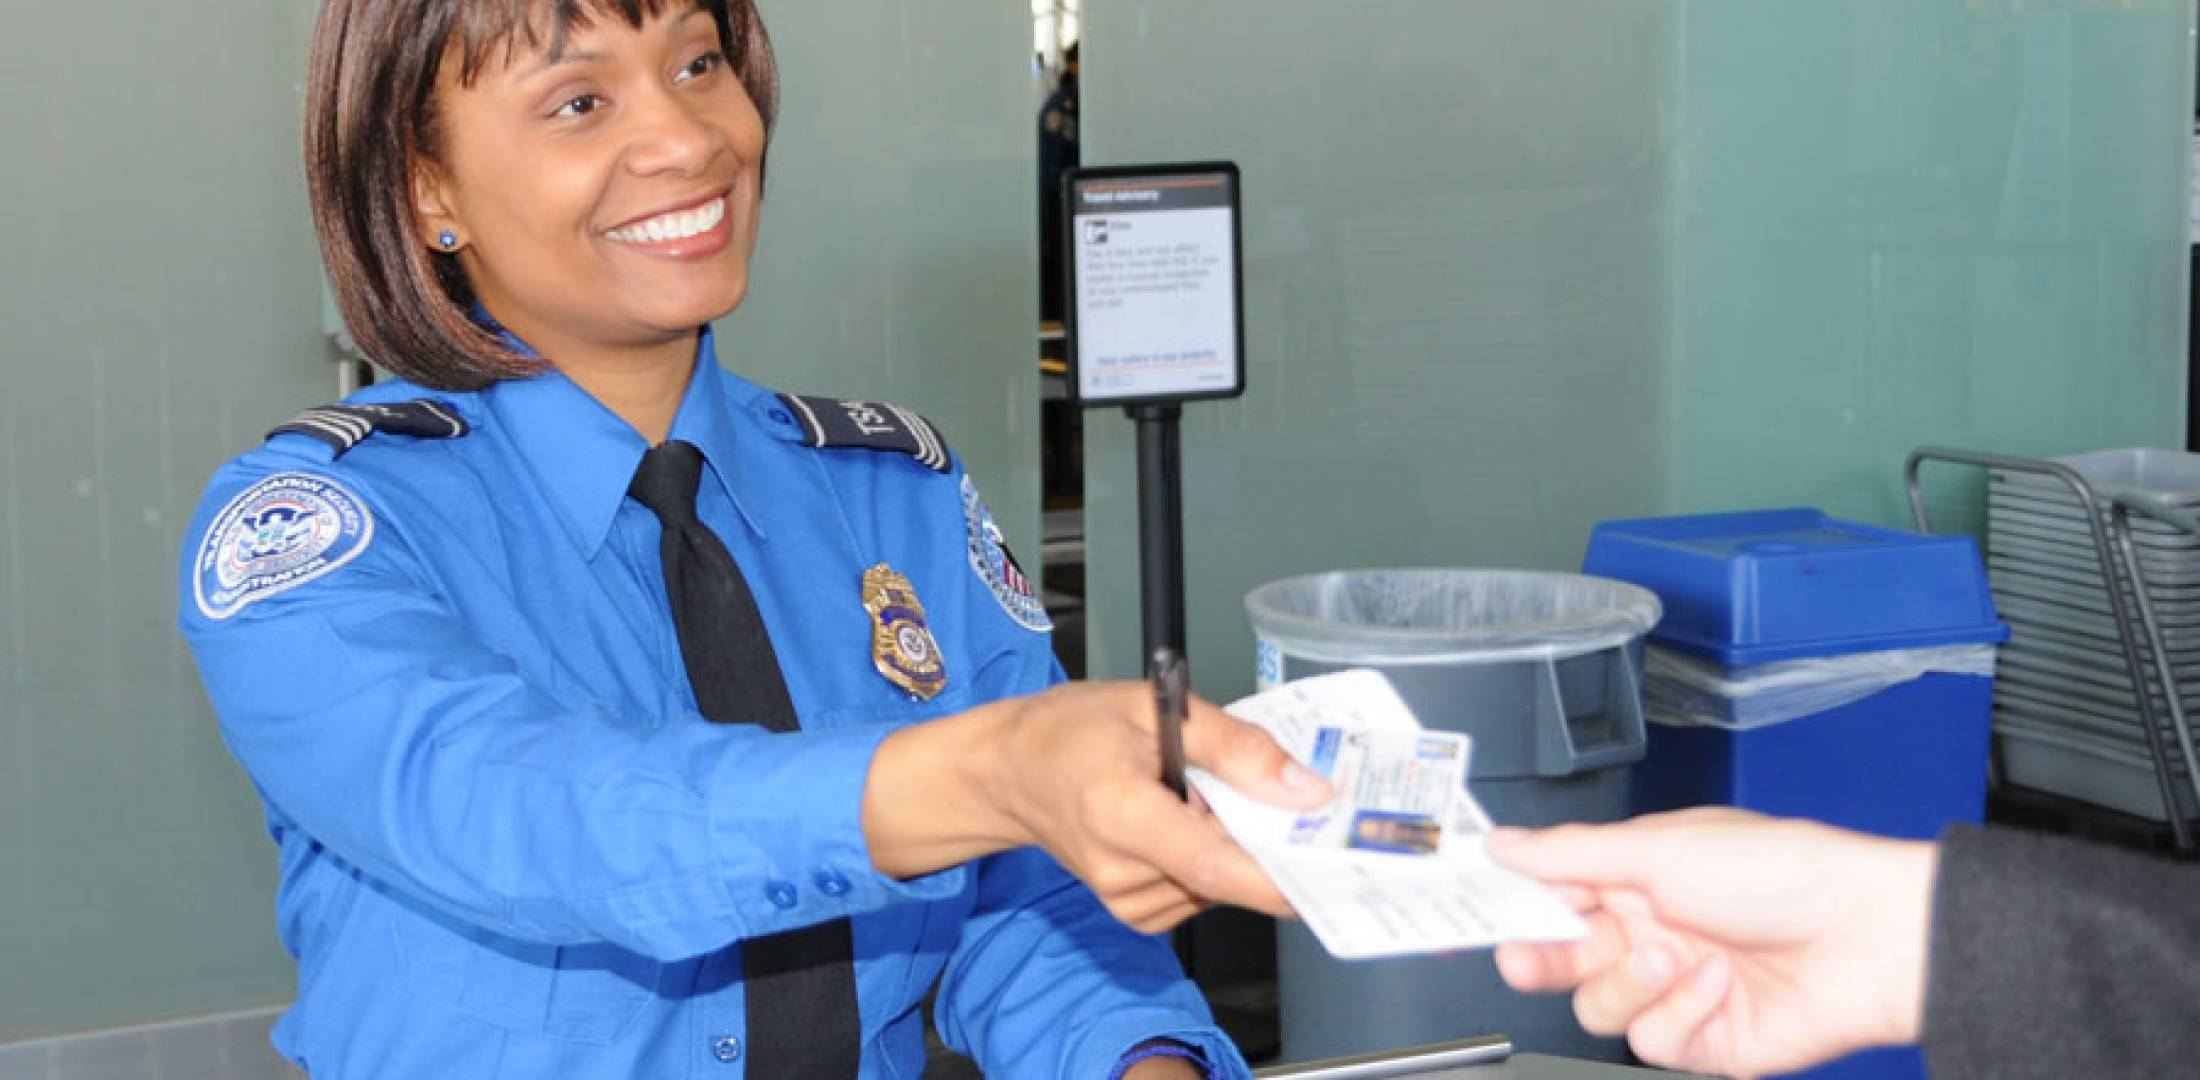 TSA security officer